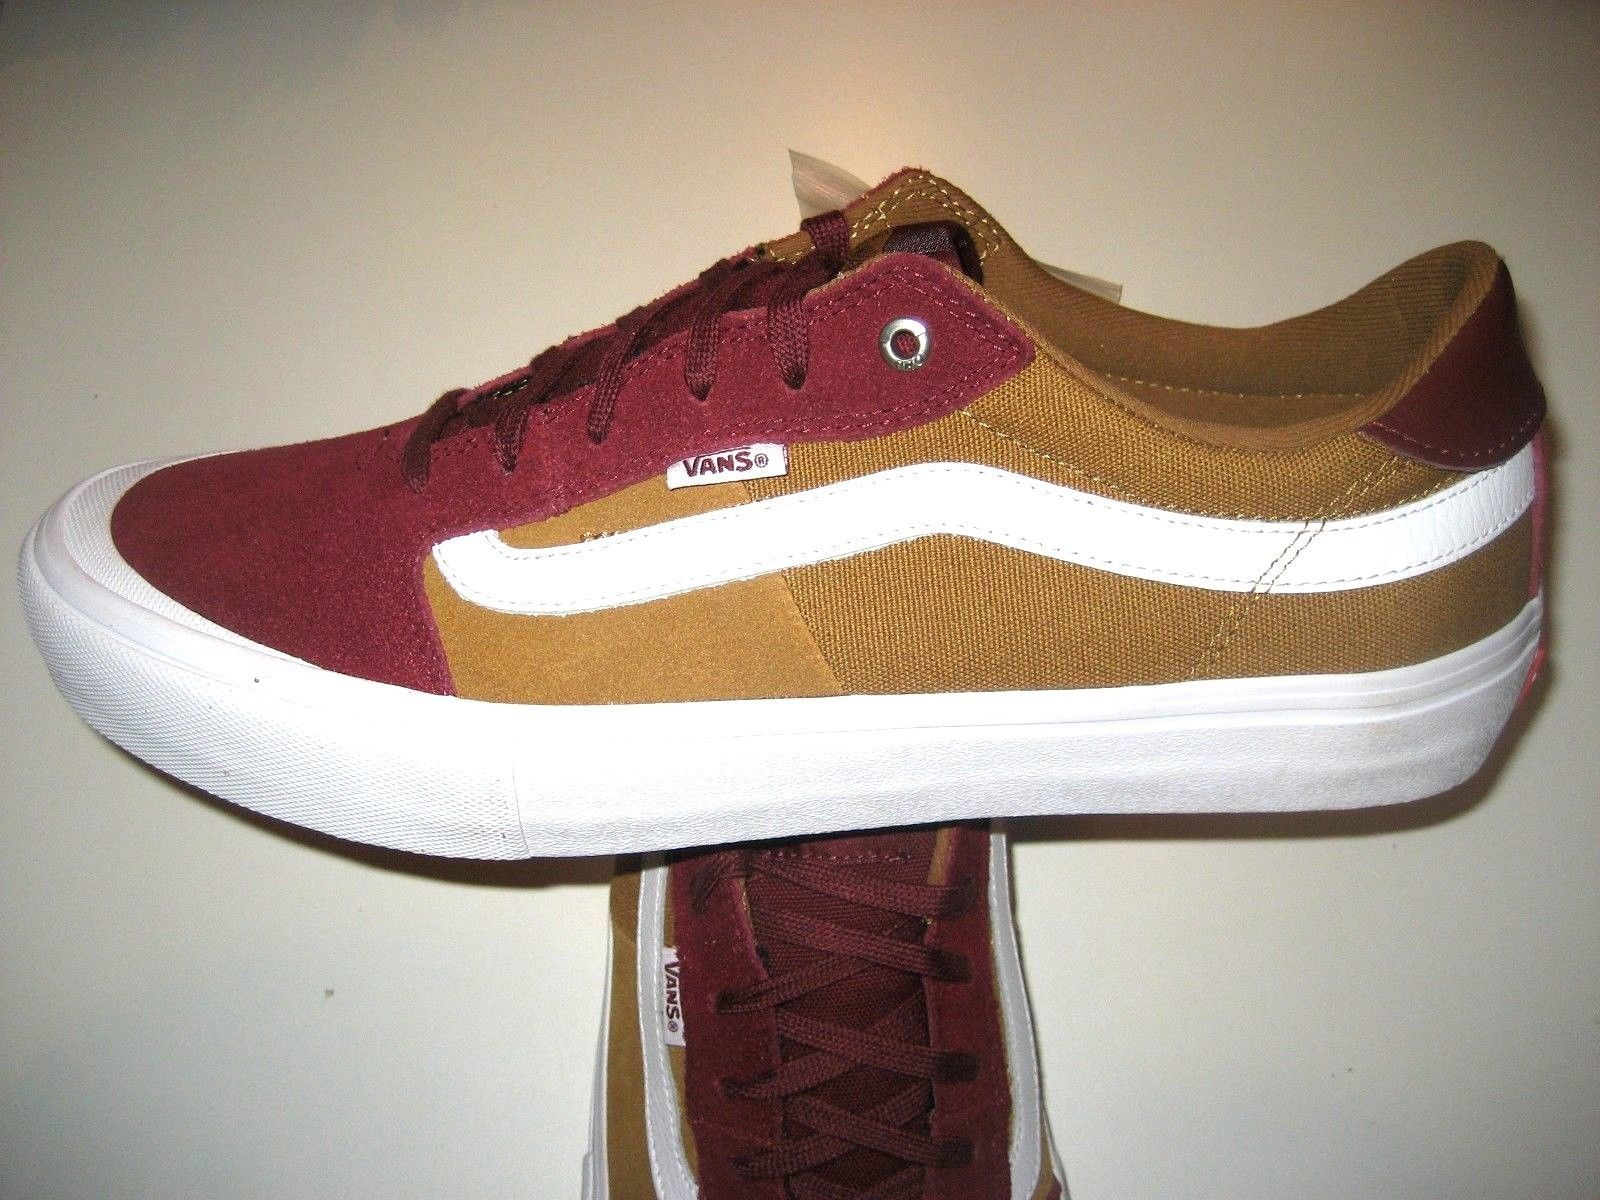 Vans Mens Style 112 Pro Burgundy Medal Bronze Skate Shoes Canvas Suede Size 12  image 2